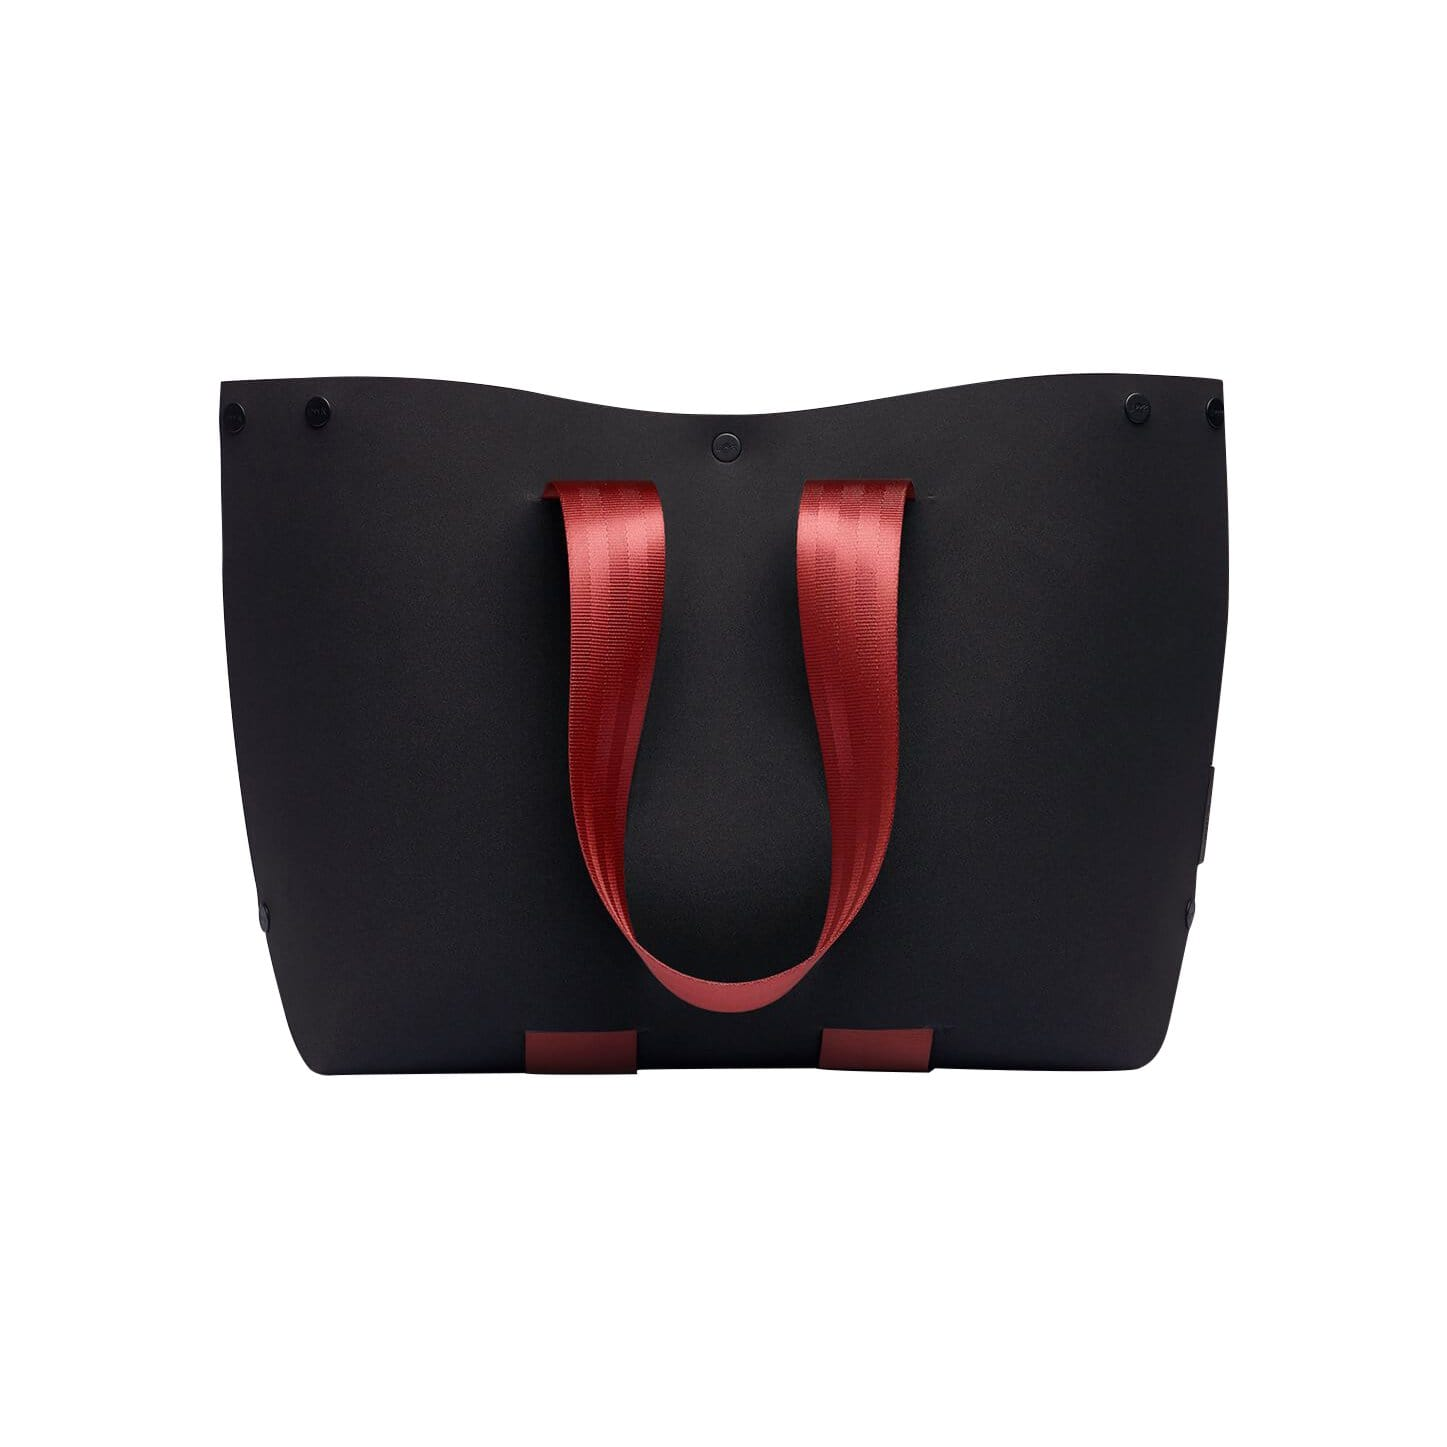 LOMMER Tote Bags Off Black / Bordeaux EvaTwo Tote Bag